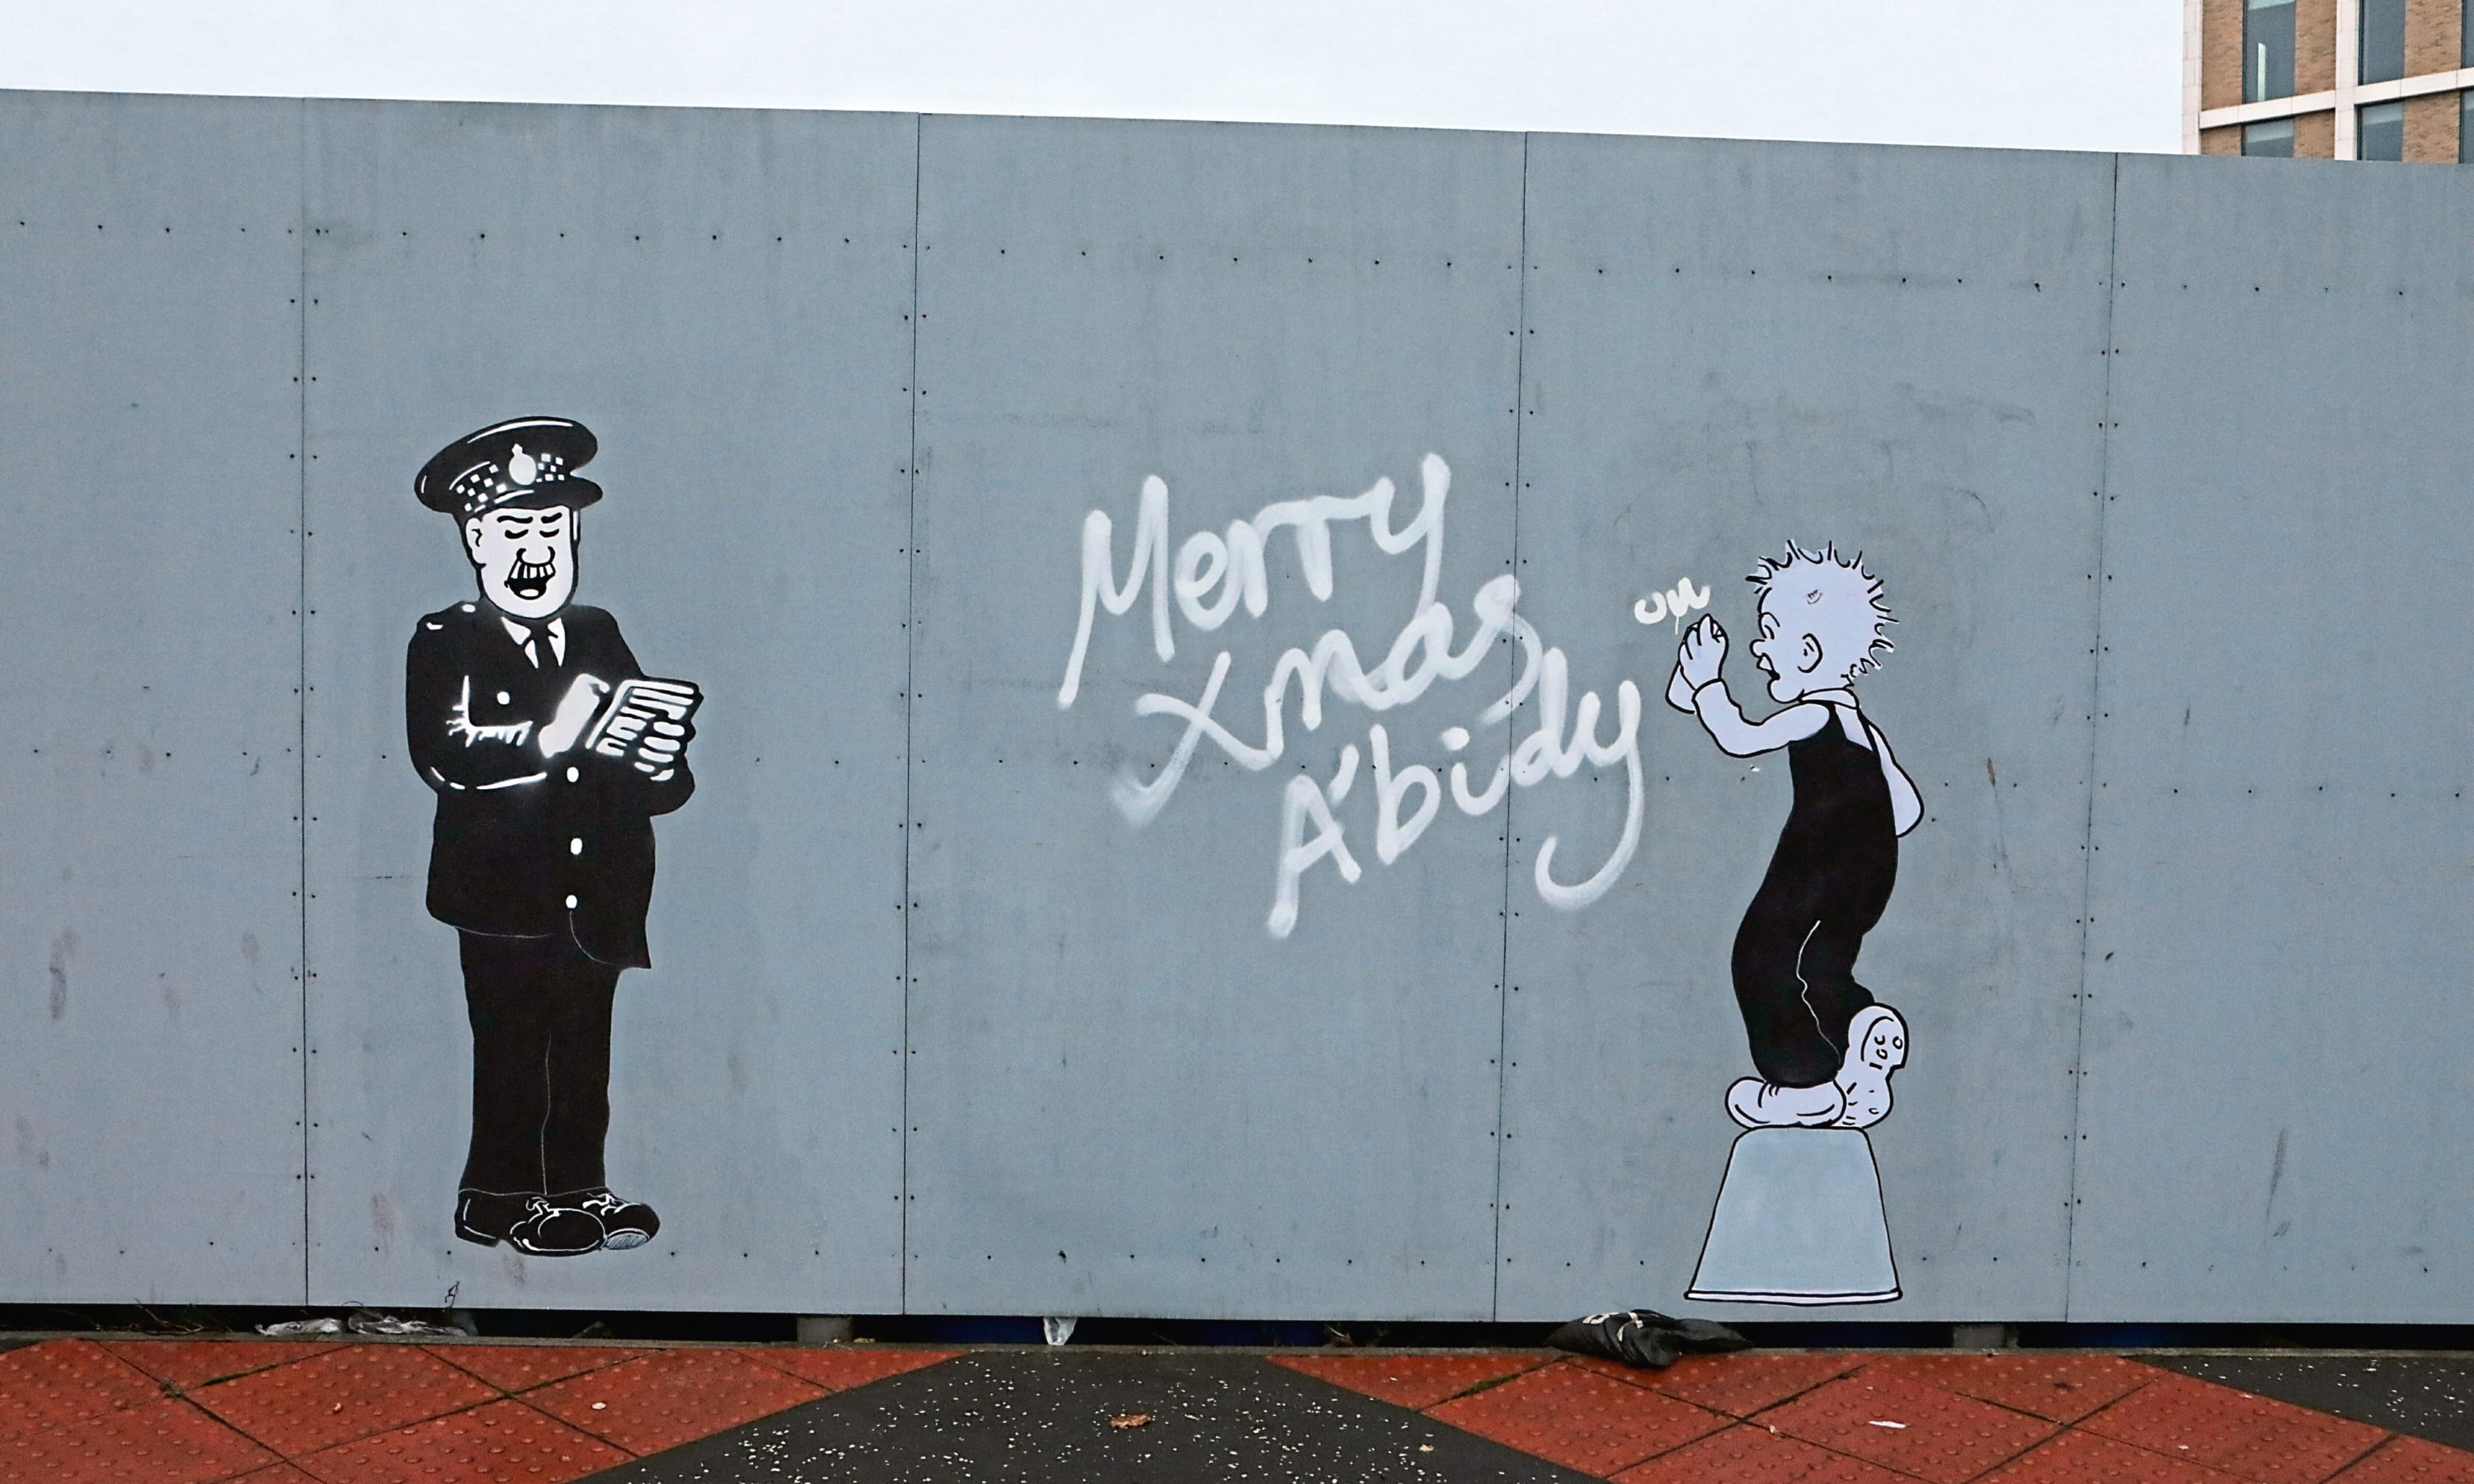 The Oor Wullie and PC Murdoch drawings on Whitehall Street.